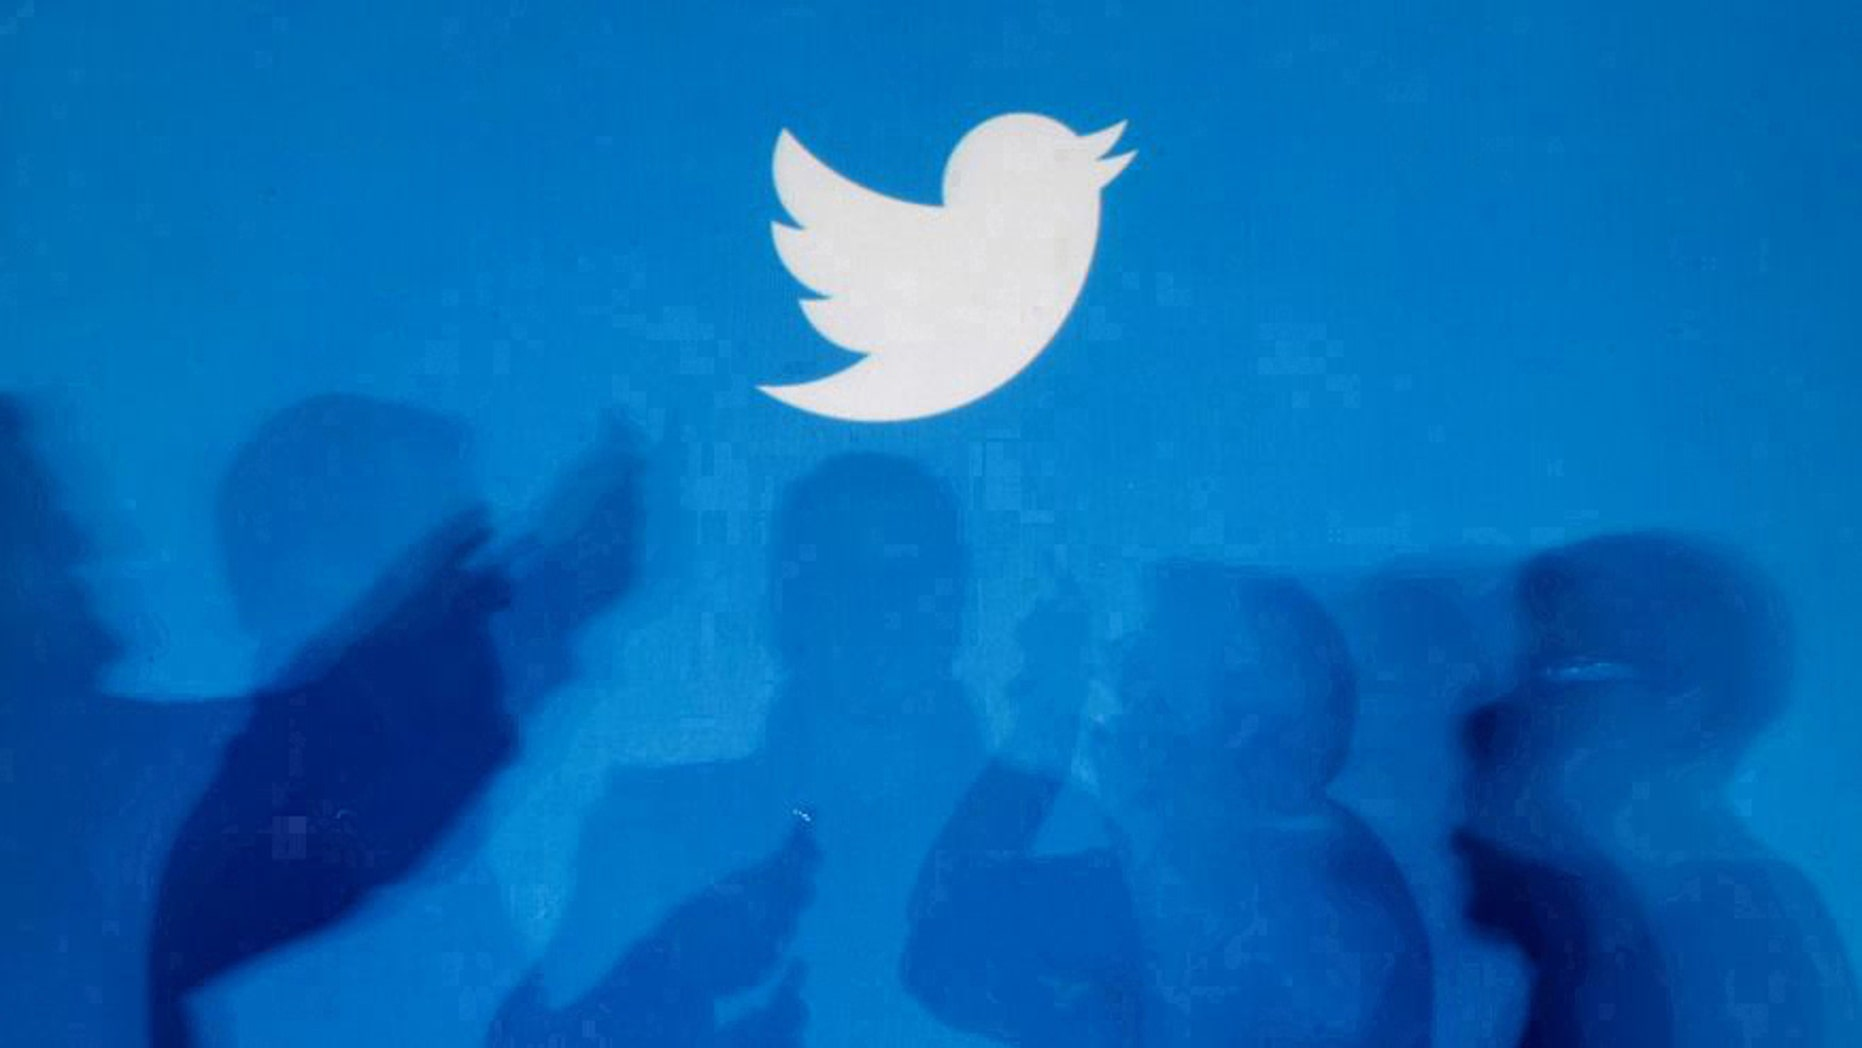 Twitter teams with USGS to detect earthquakes | Fox News